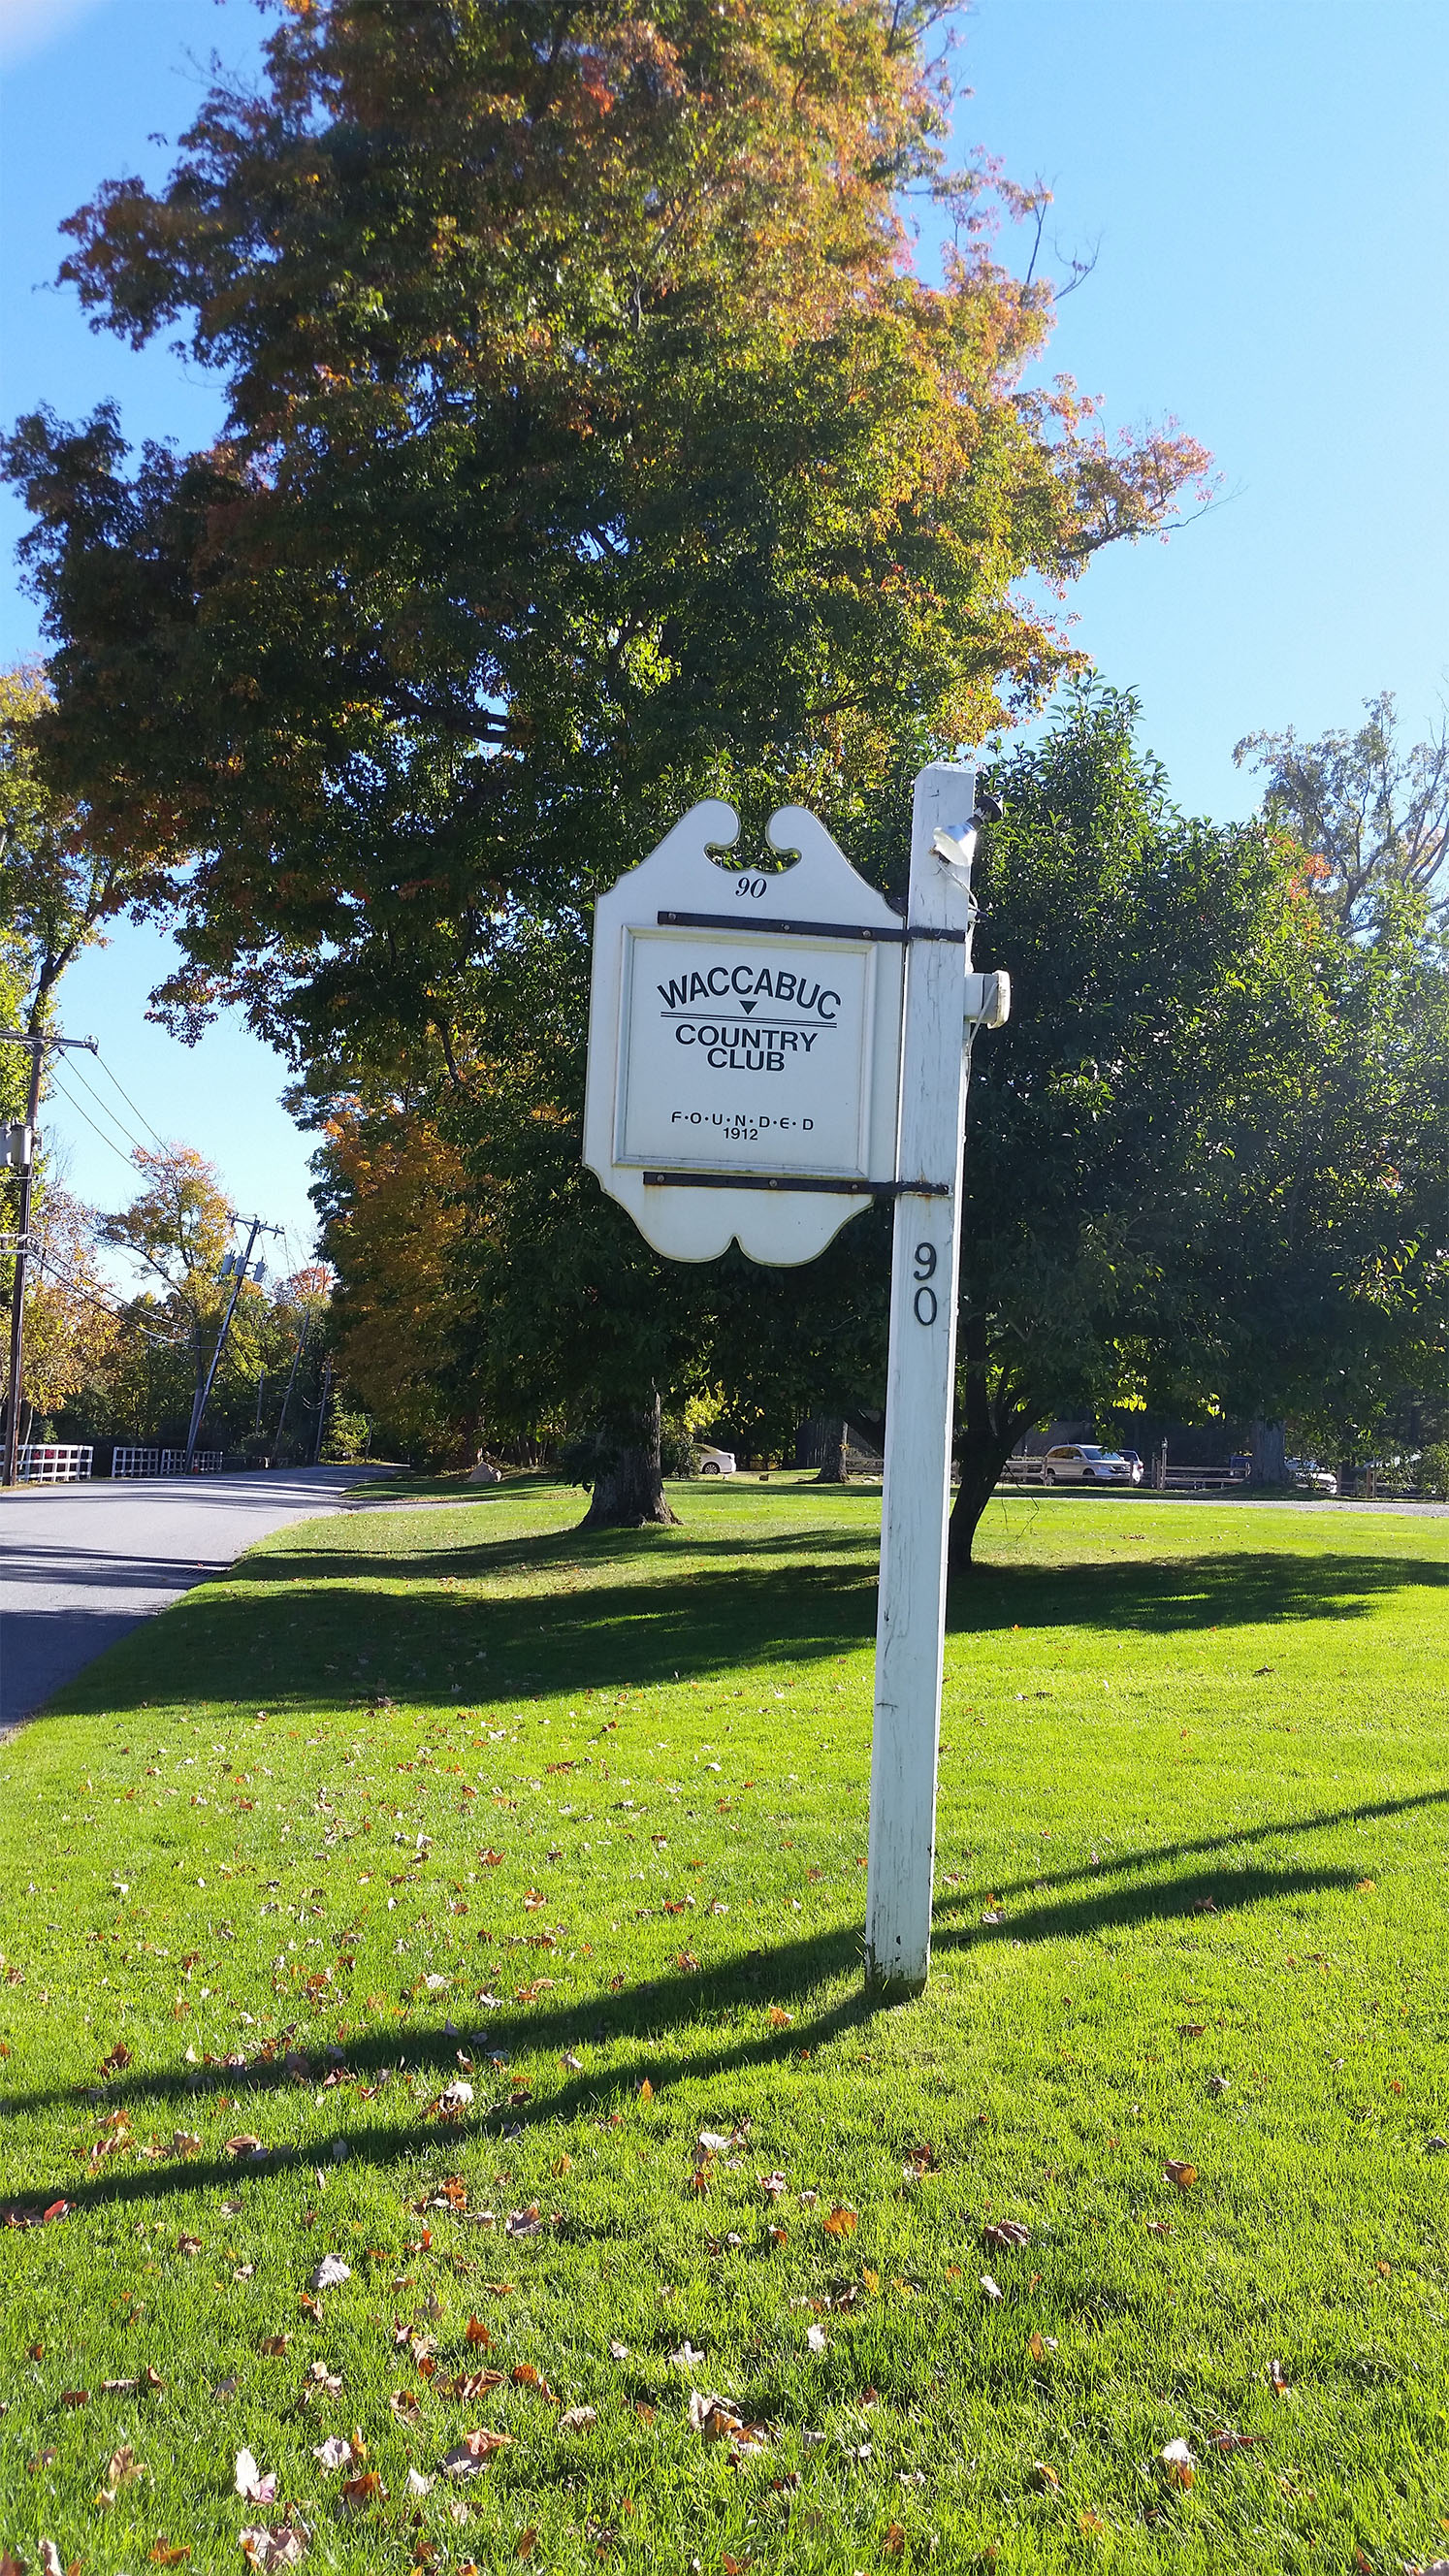 2. Country Club Sign